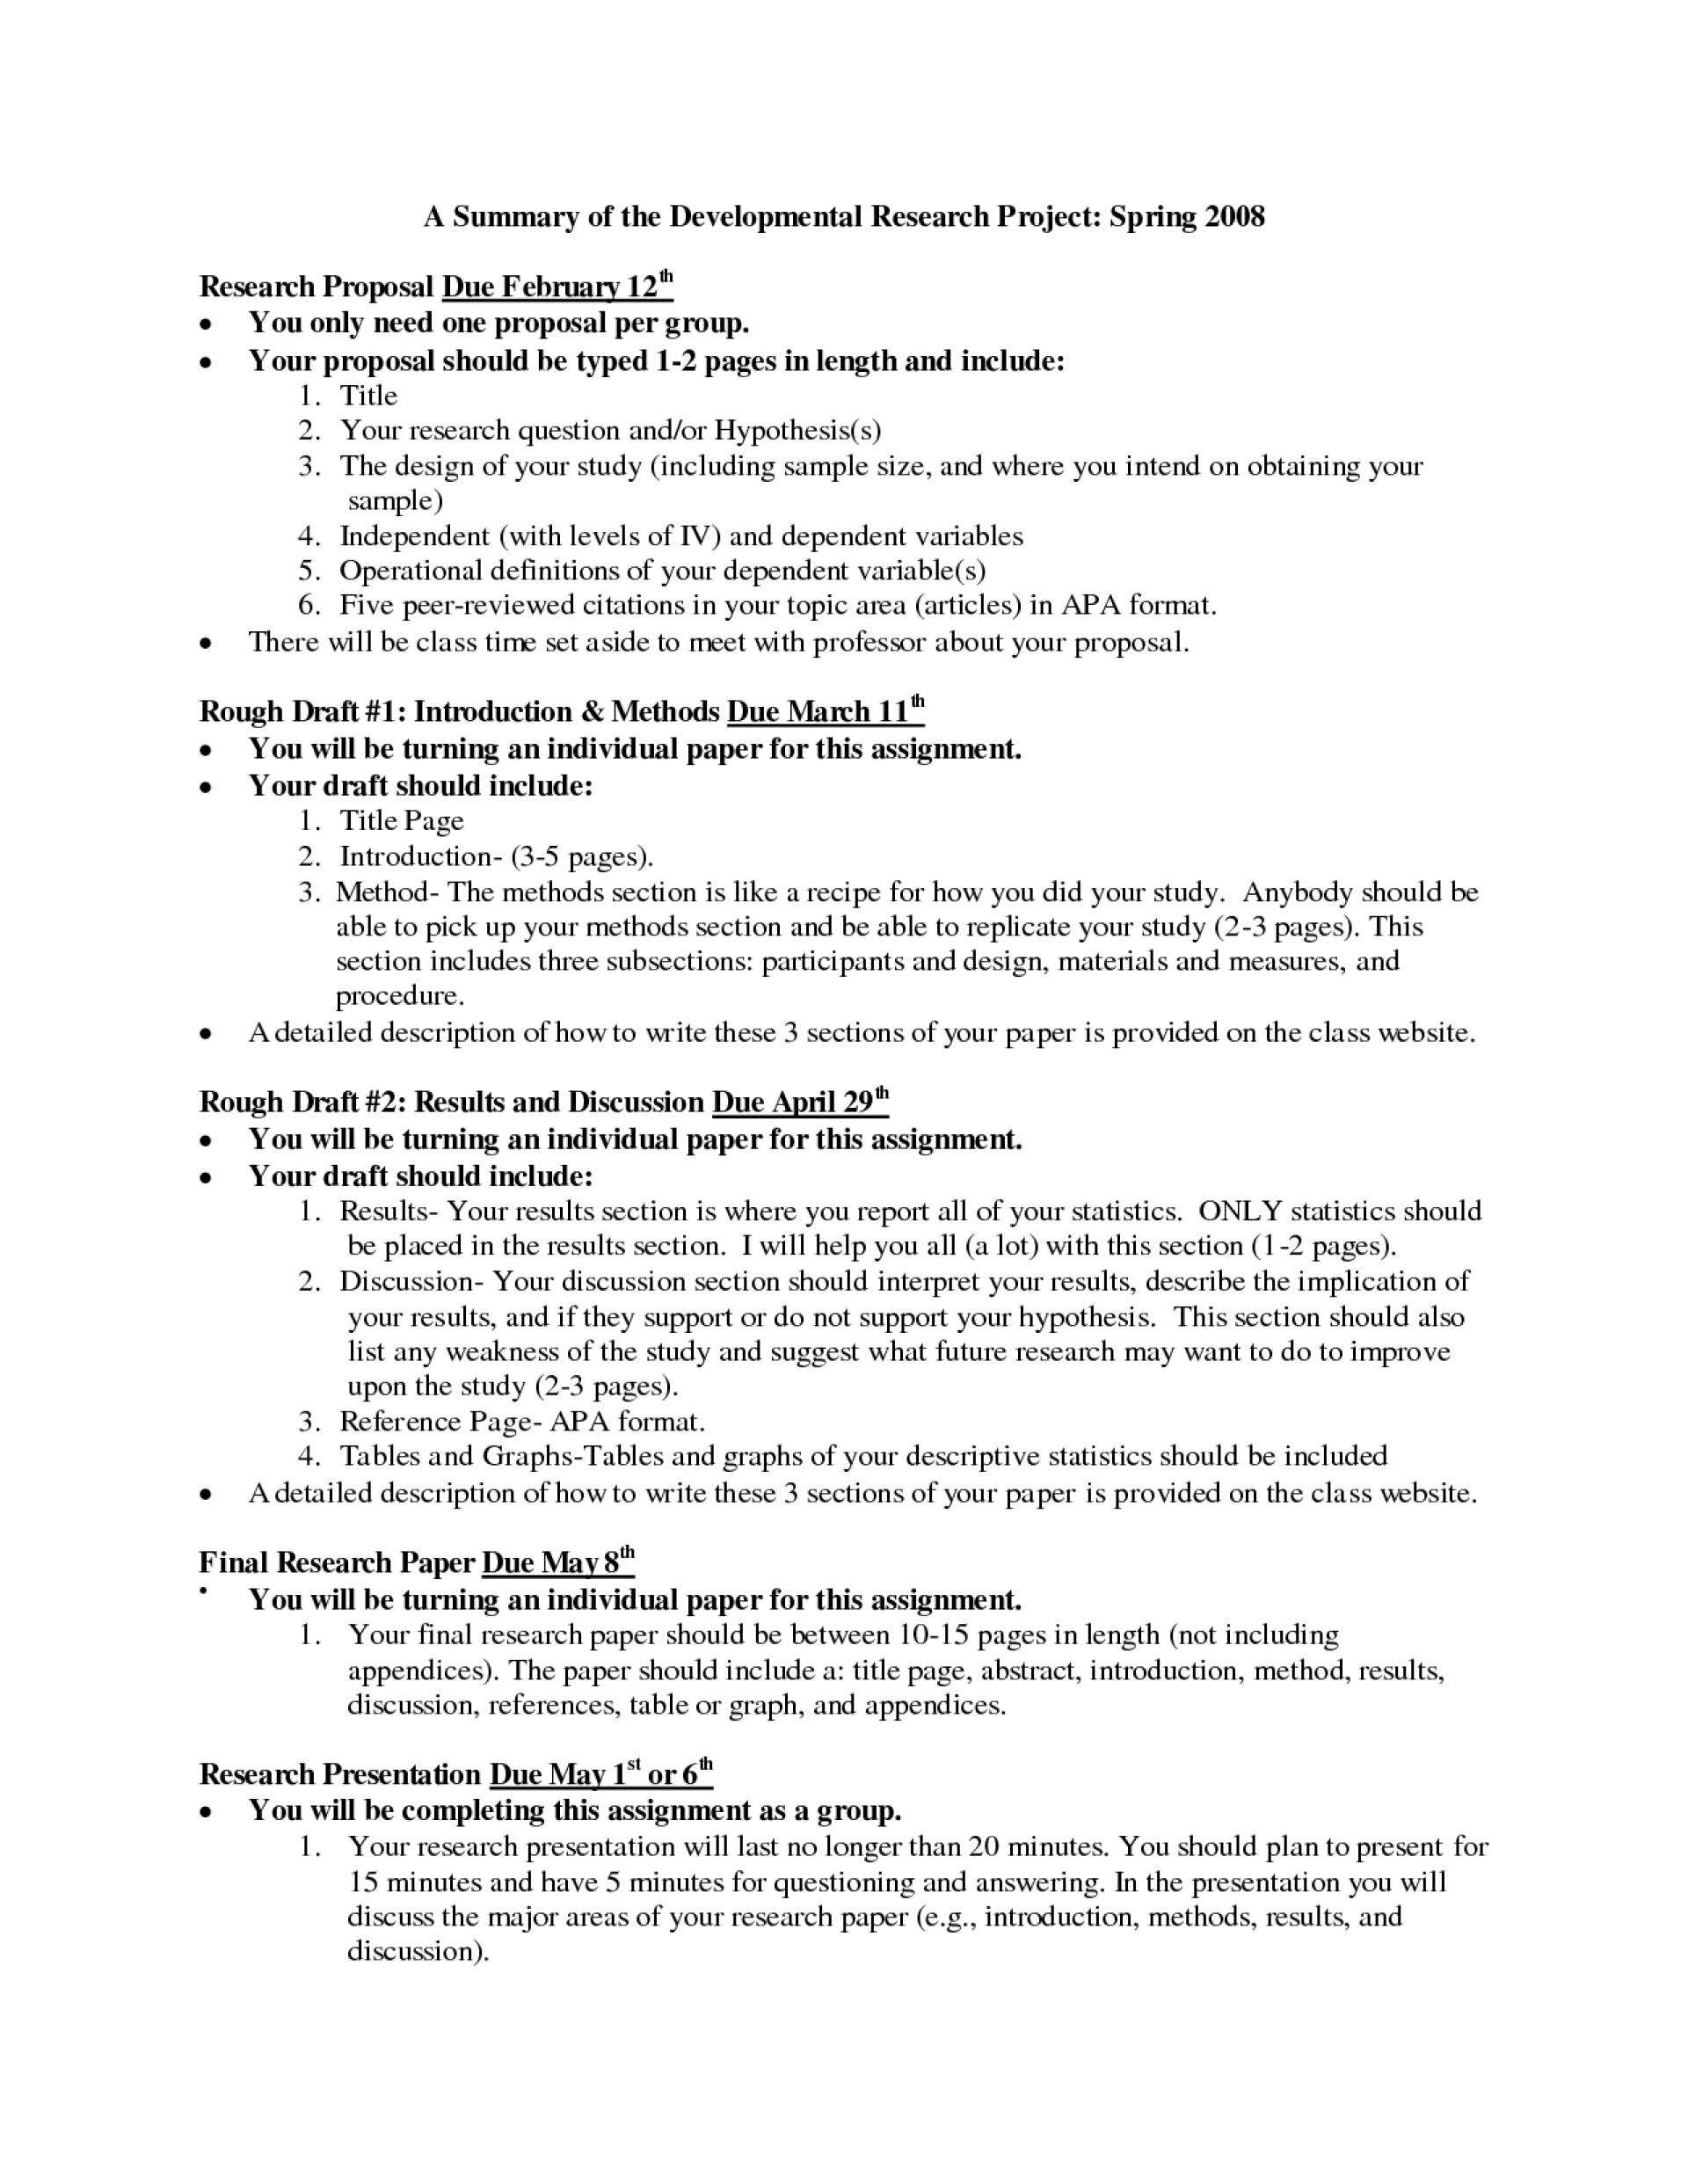 012 Good Research Paper Topic Psychology Undergraduate Resume Unique Sample Singular Topics 2019 Ideas In Business And Finance For College Students 1920